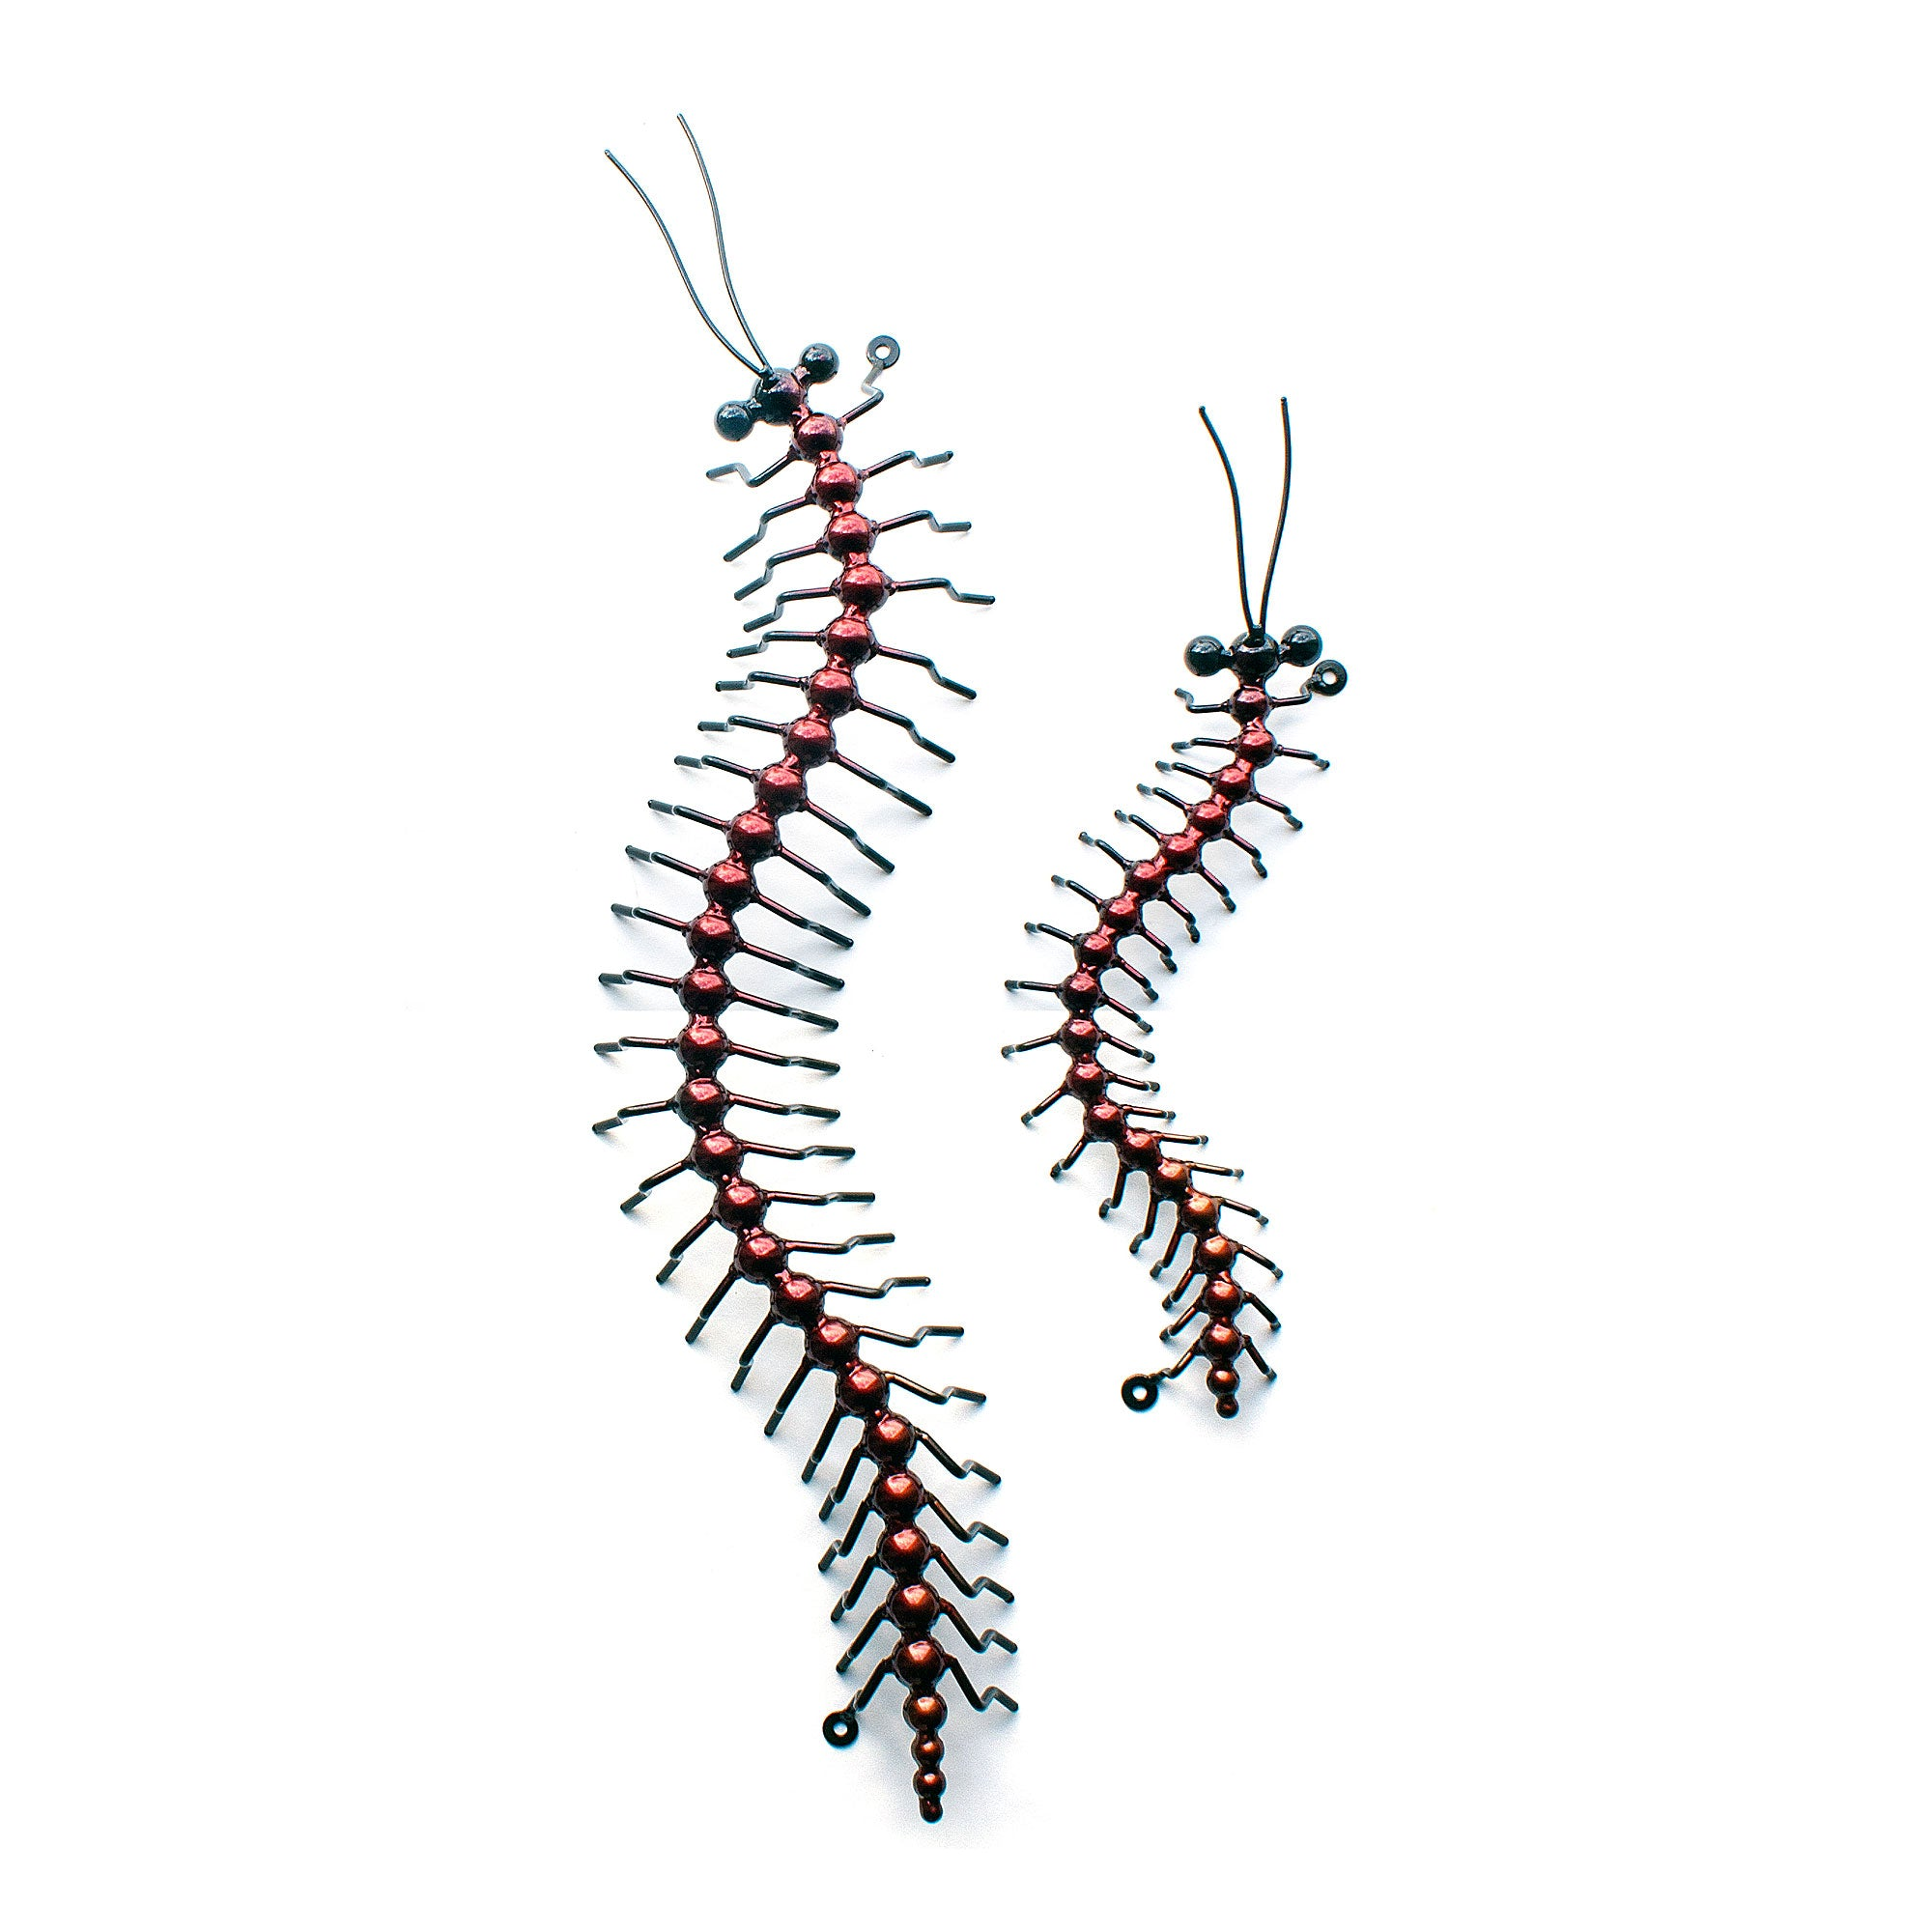 The Metal Caterpillar – is a unique spring addition for Garden and Home Décor